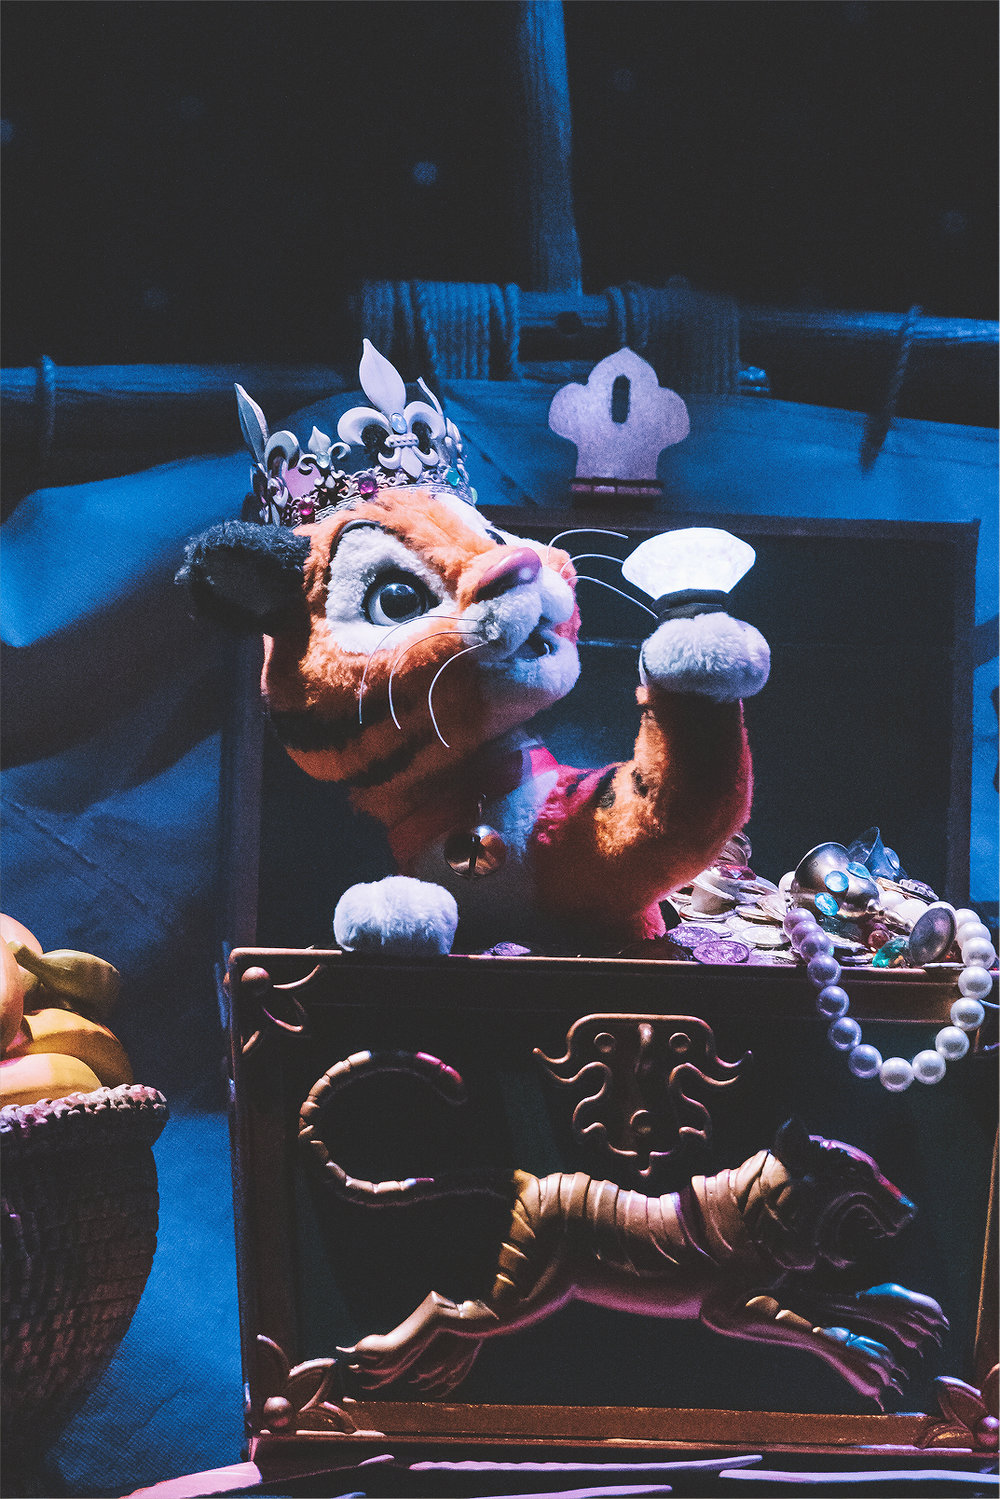 """As I mentioned before, Sinbad's Storybook Voyage fills you with the same kind of excitement as Pirates of the Caribbean or The Haunted Mansion. While you're experiencing the journey with Sinbad and Chandu, you can't help but wonder, """"What will happen next?"""""""